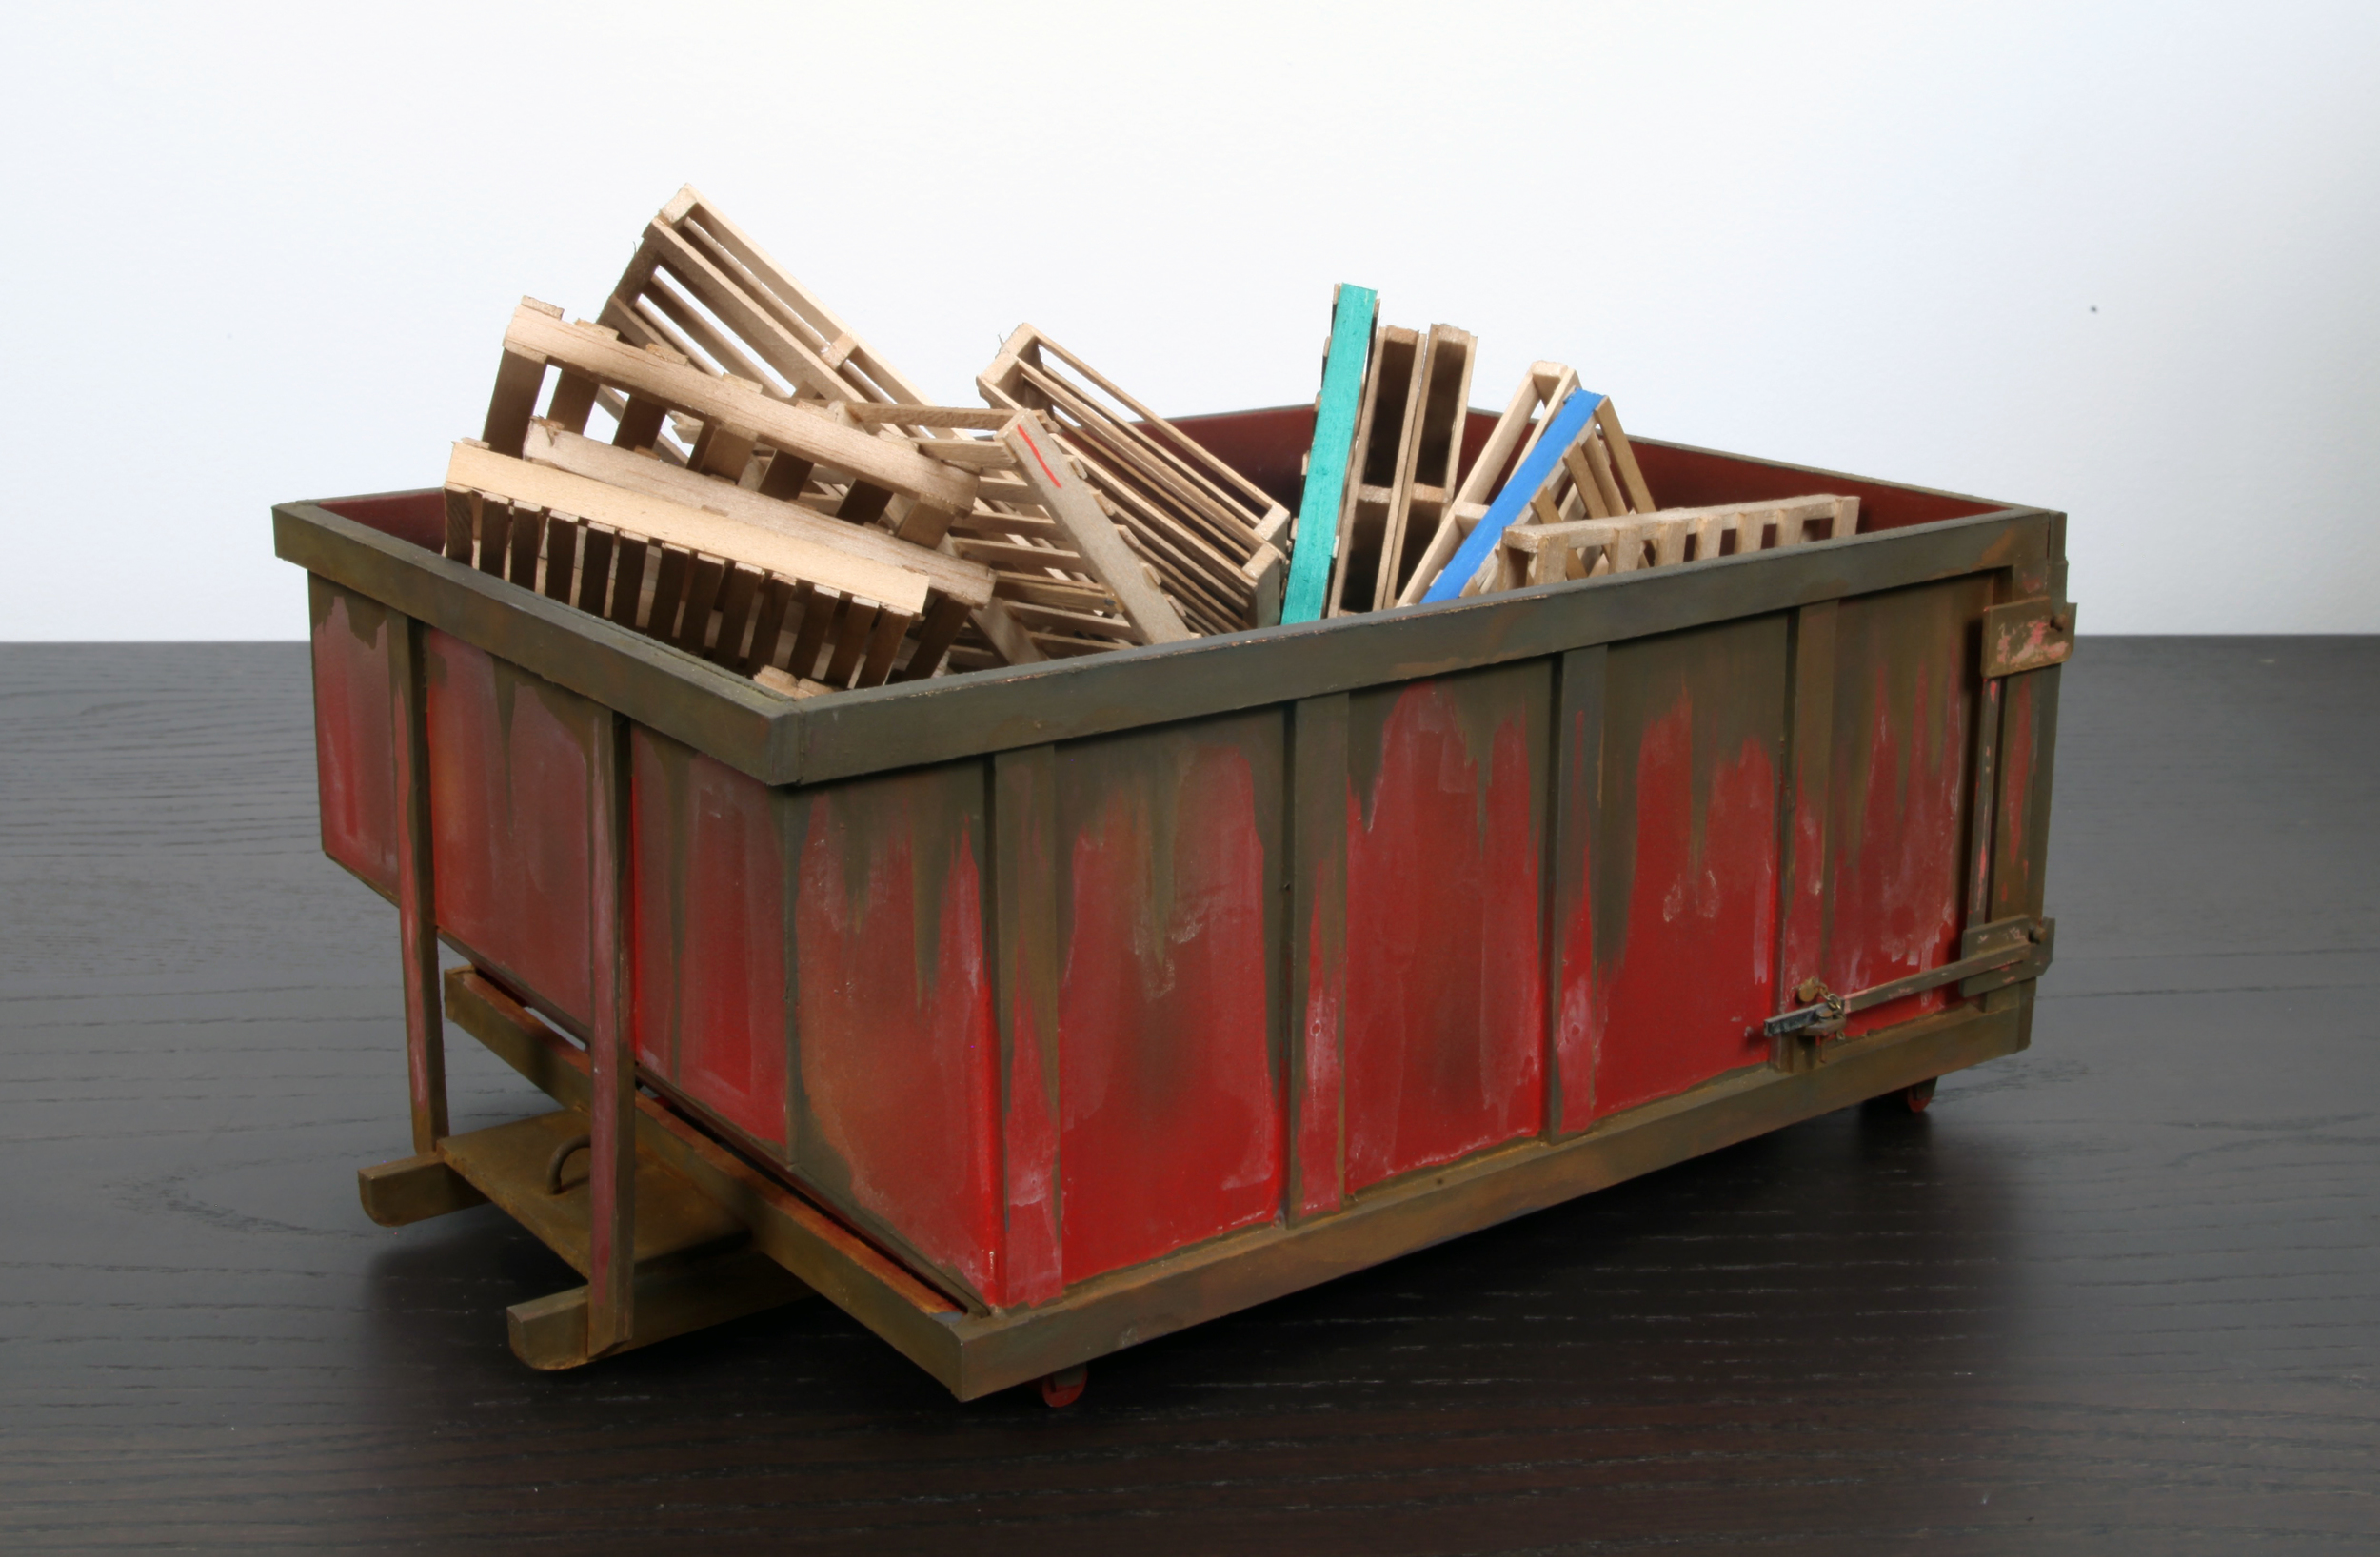 Red Dumpster with 30 pallets